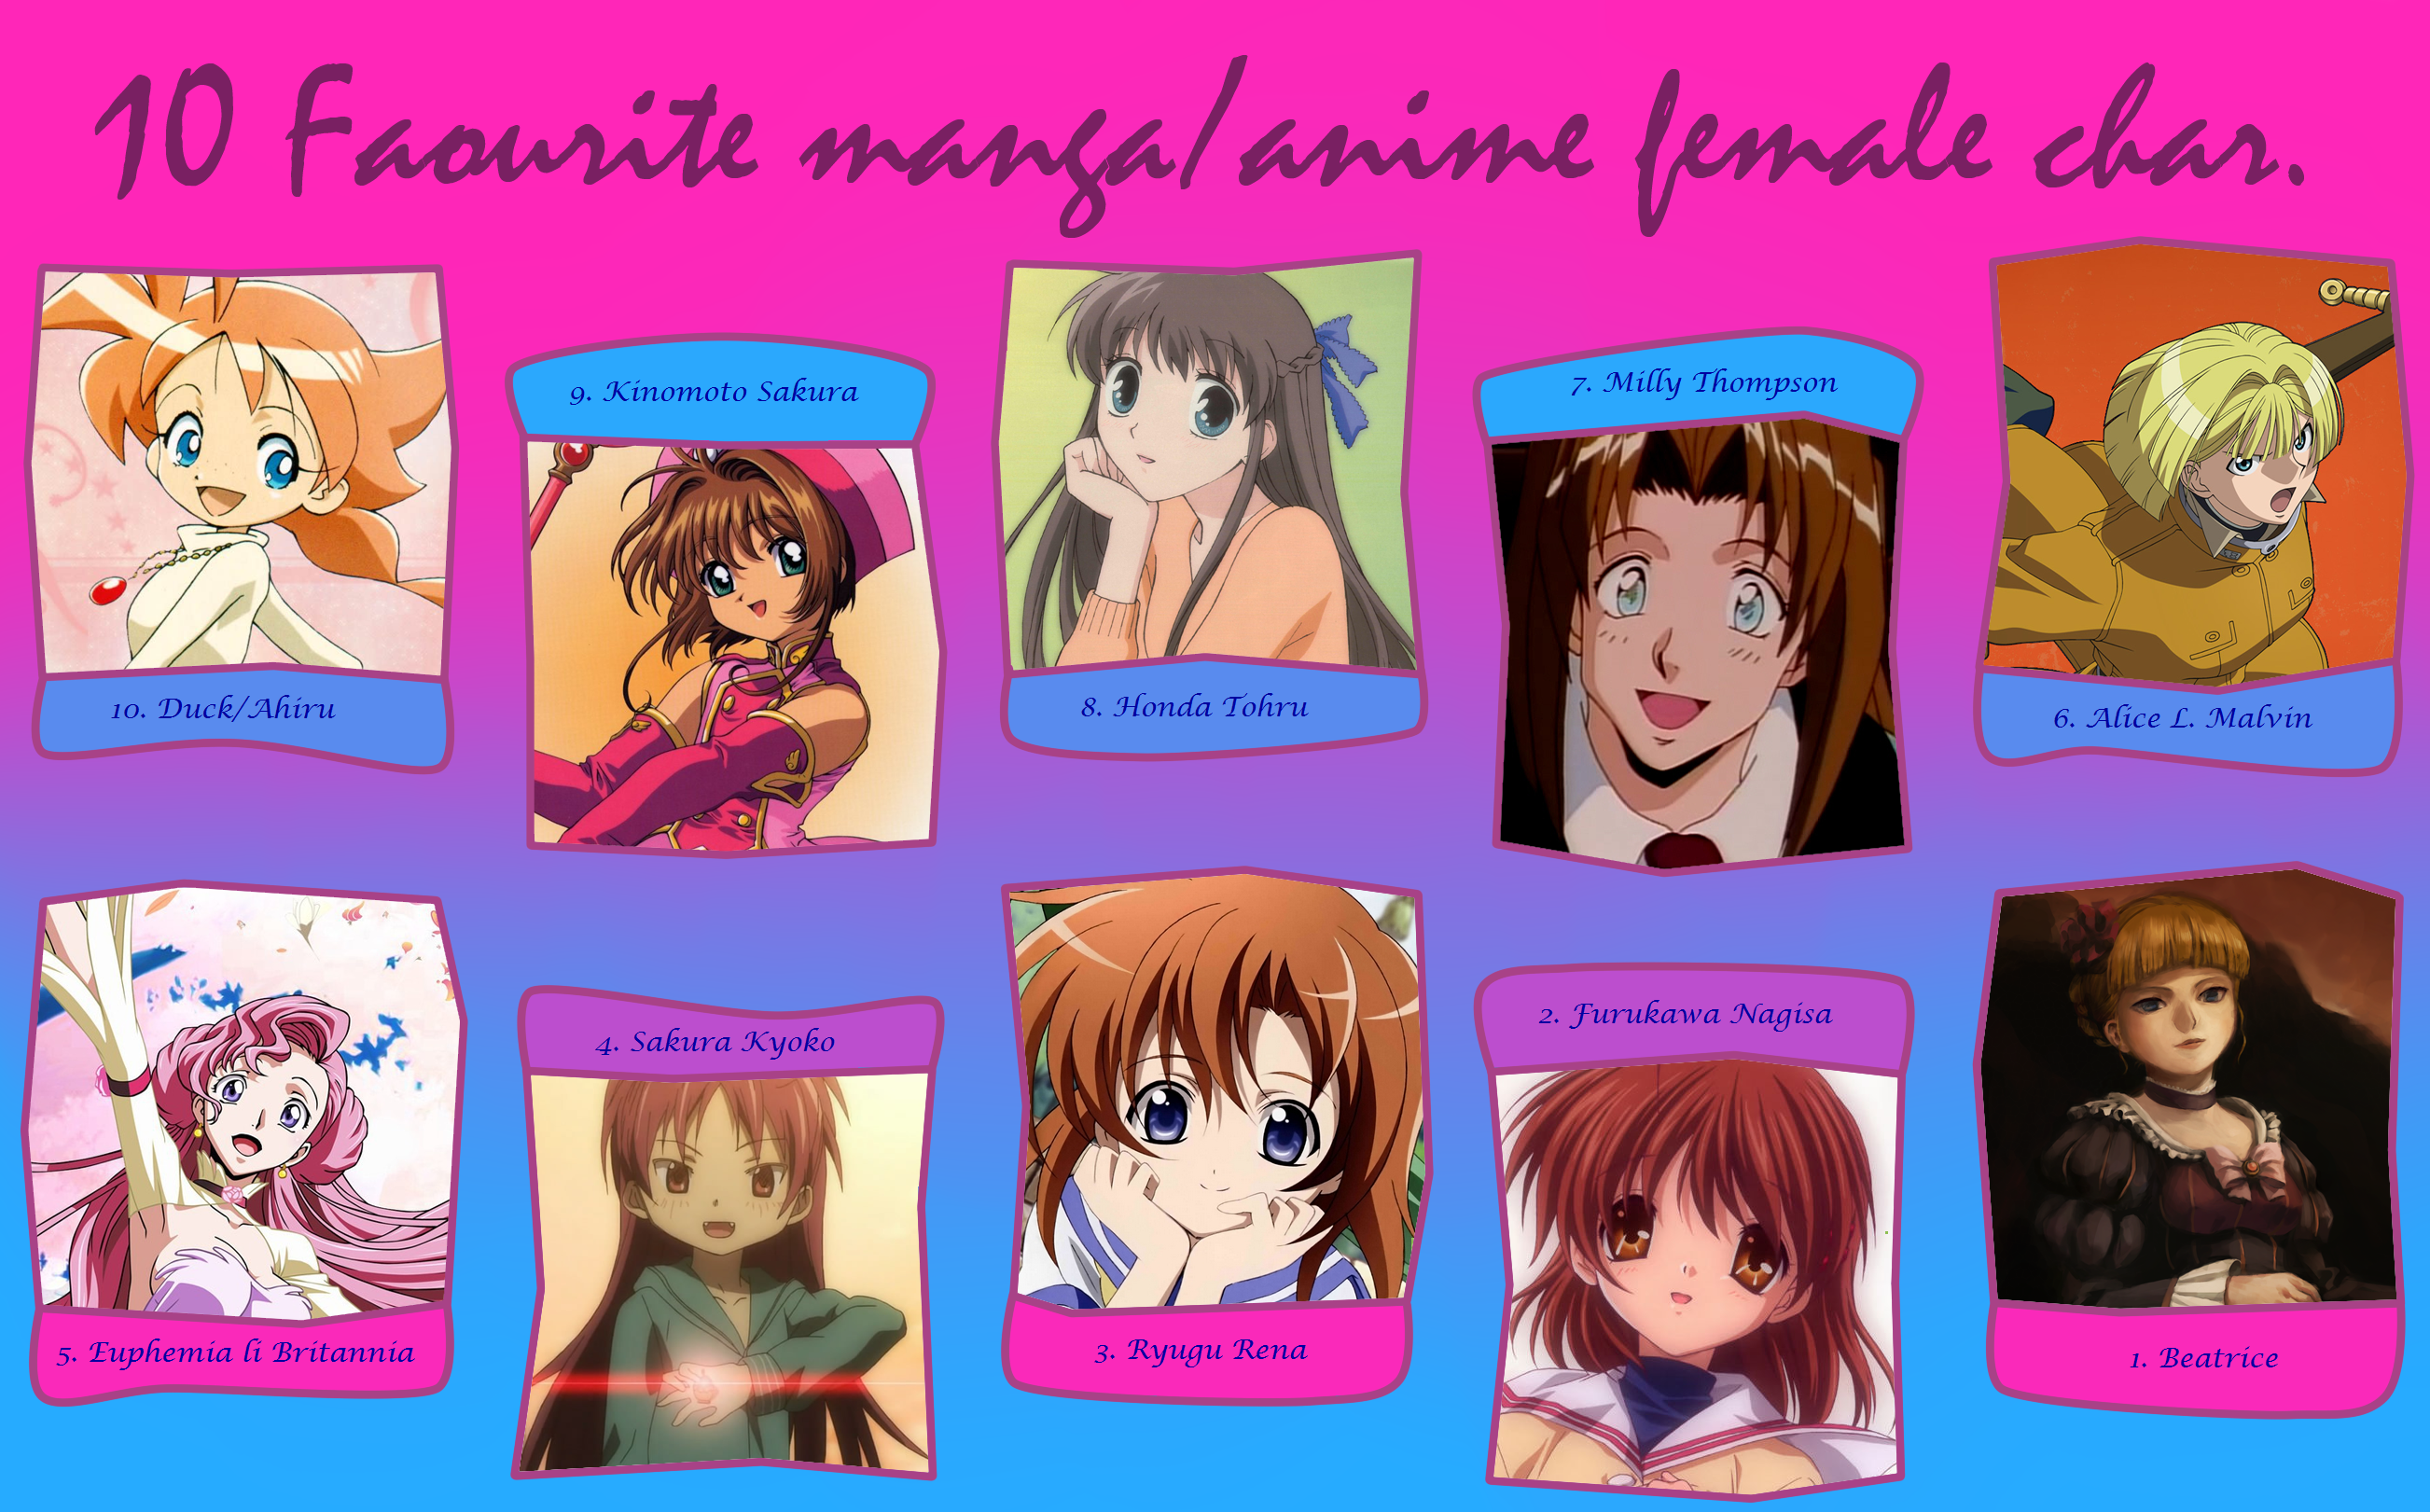 My Top 9 Favorite Female Anime/Manga Characters by